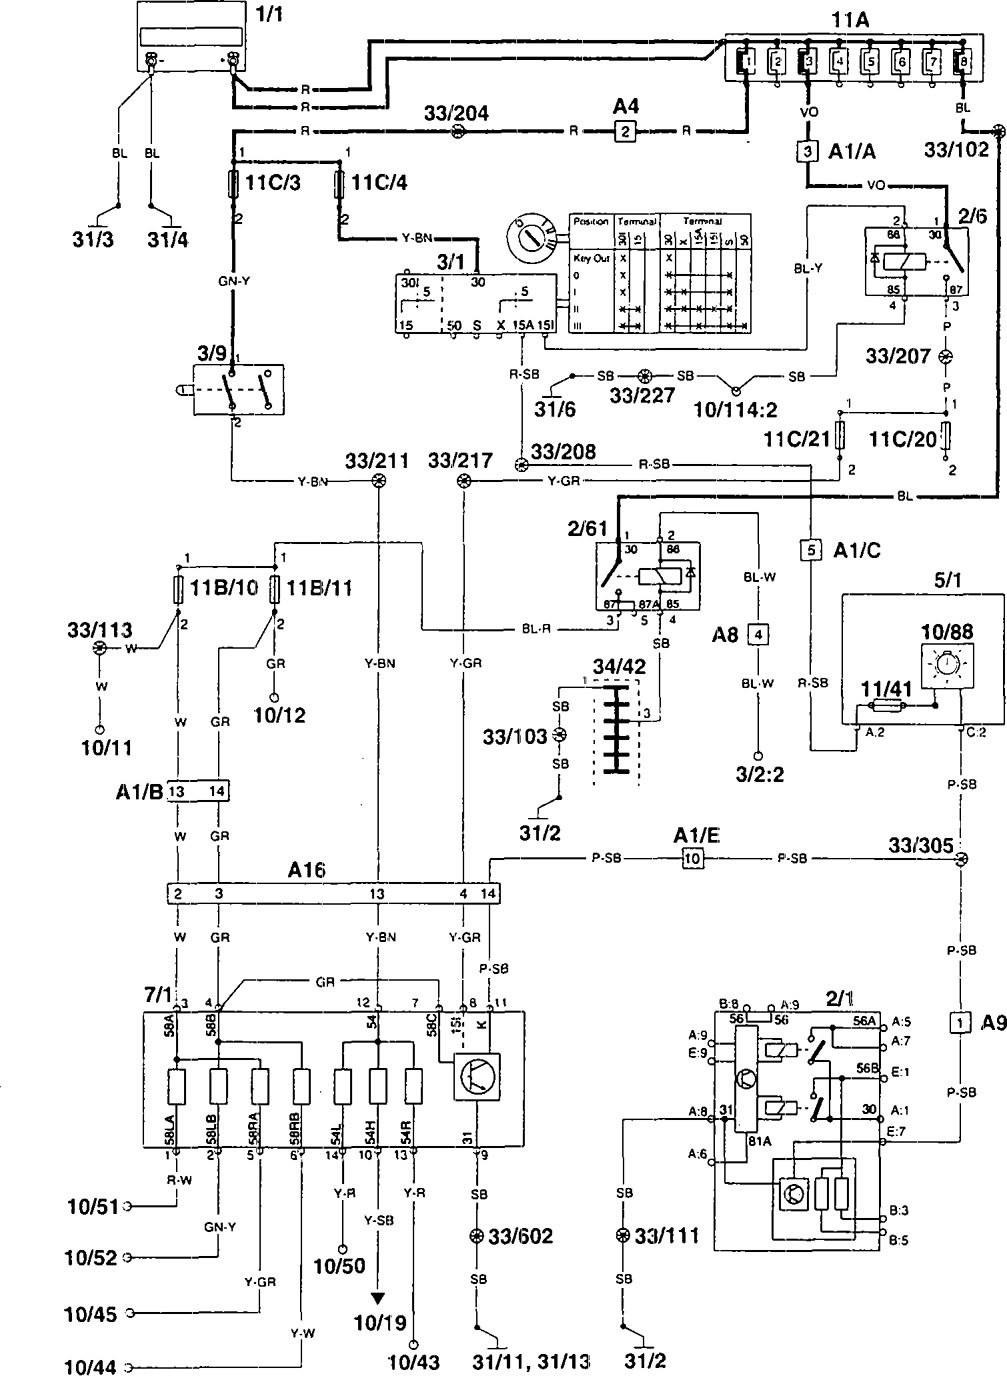 Volvo 960 (1995) - wiring diagrams - lamp out warning - Carknowledge.info | Volvo 960 Wiring Diagram 1995 |  | Carknowledge.info